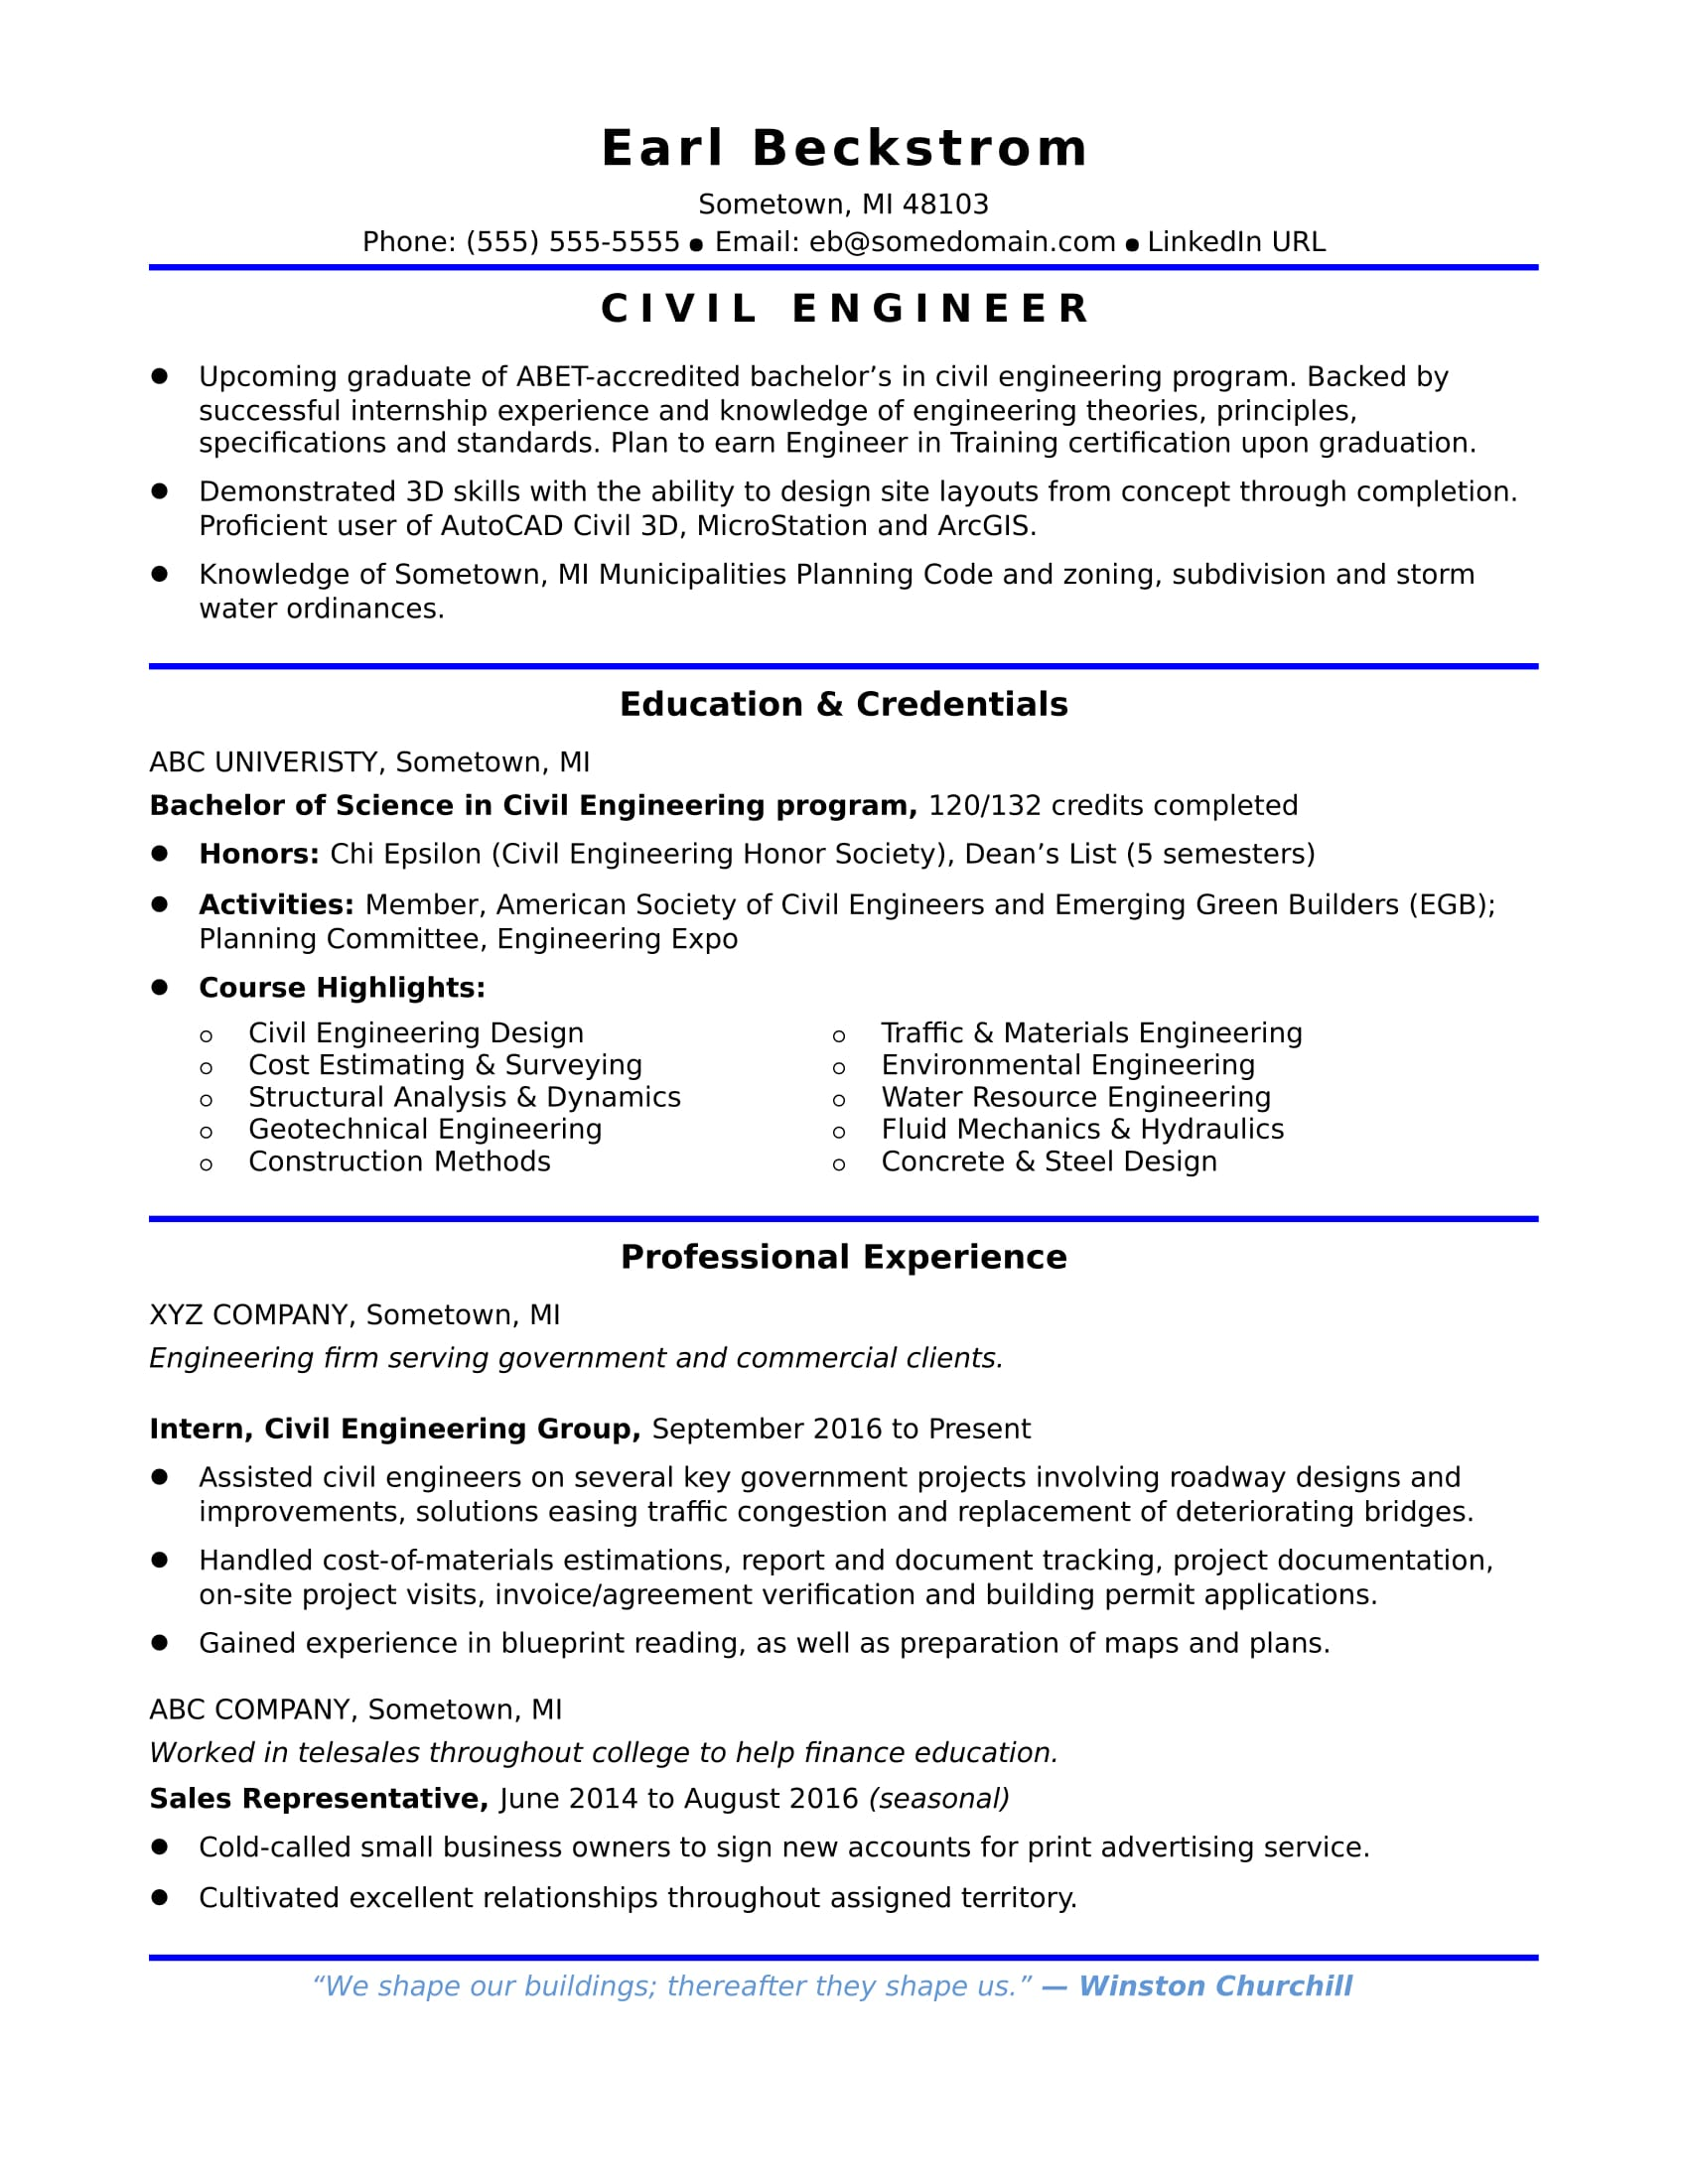 Sample Resume For An Entrylevel Civil Engineer  Monsterm. Risk Management Resume Samples. Manufacturing Resumes. Resume Title For Fresher. Technical Program Manager Resume Sample. Different Types Of Resume. Sales Titles For Resumes. Indesign Resumes. Resume Accent Mark